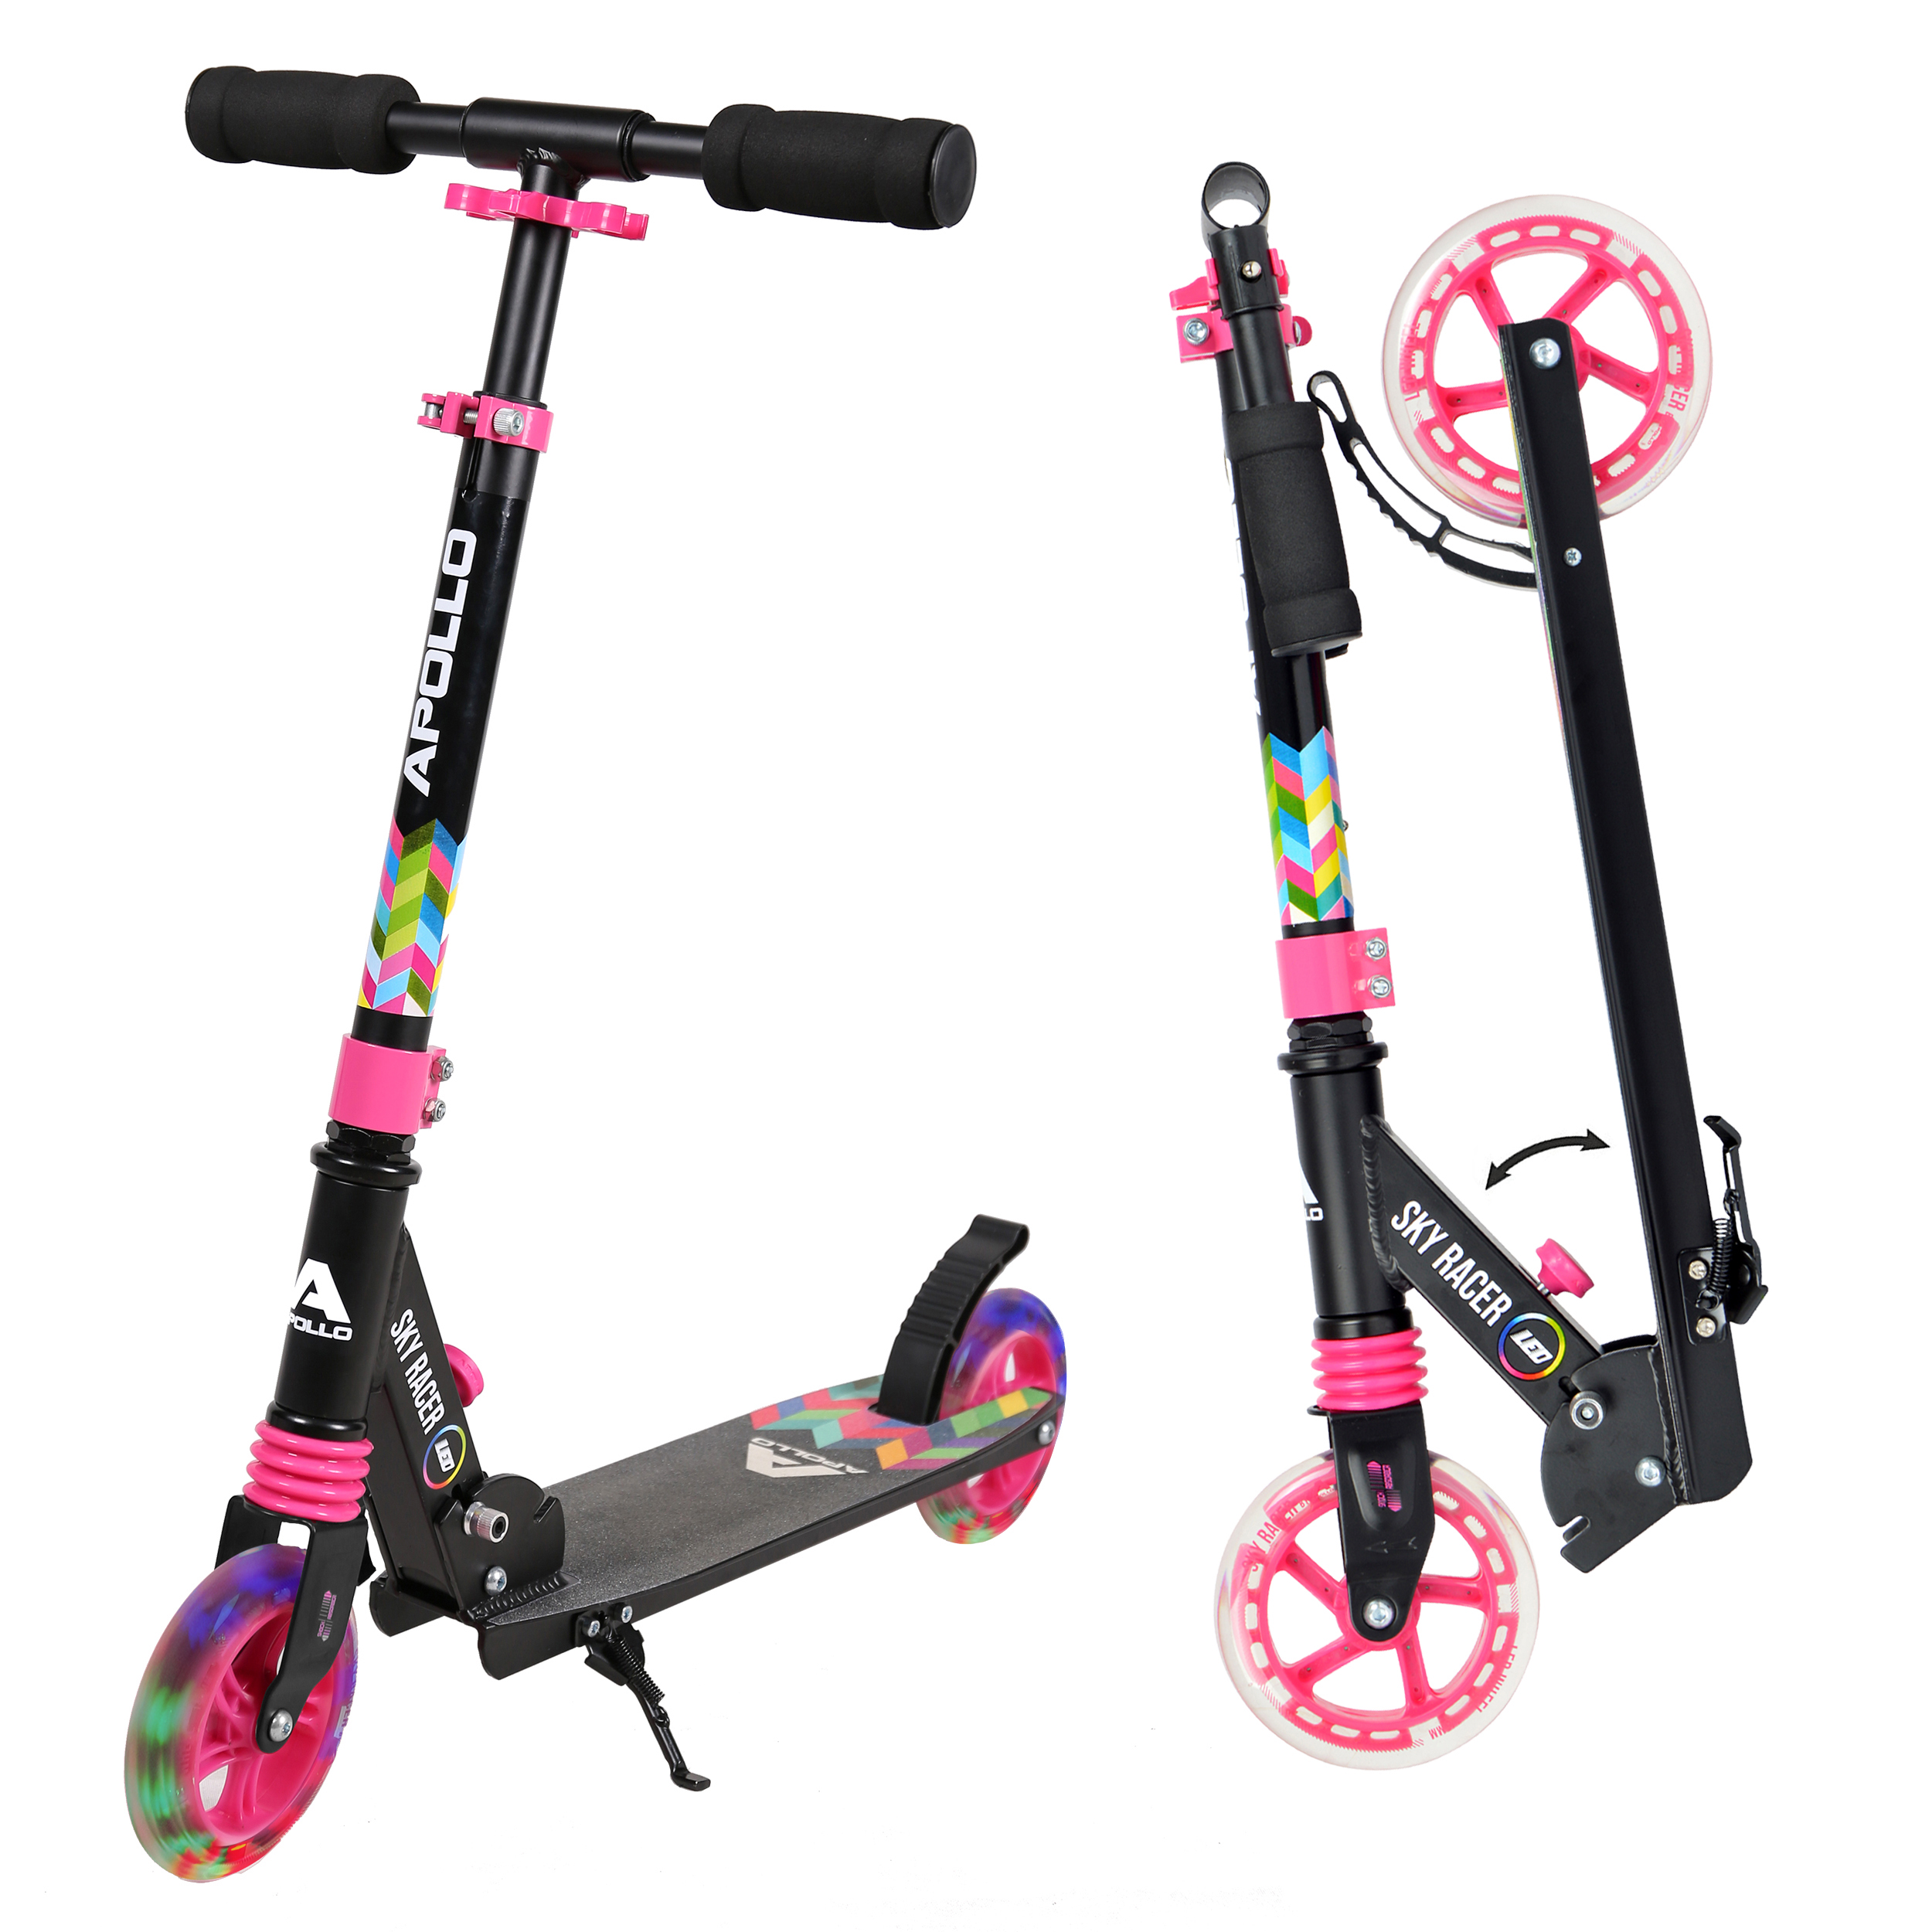 City Scooter - SkyRacer - Multicolor